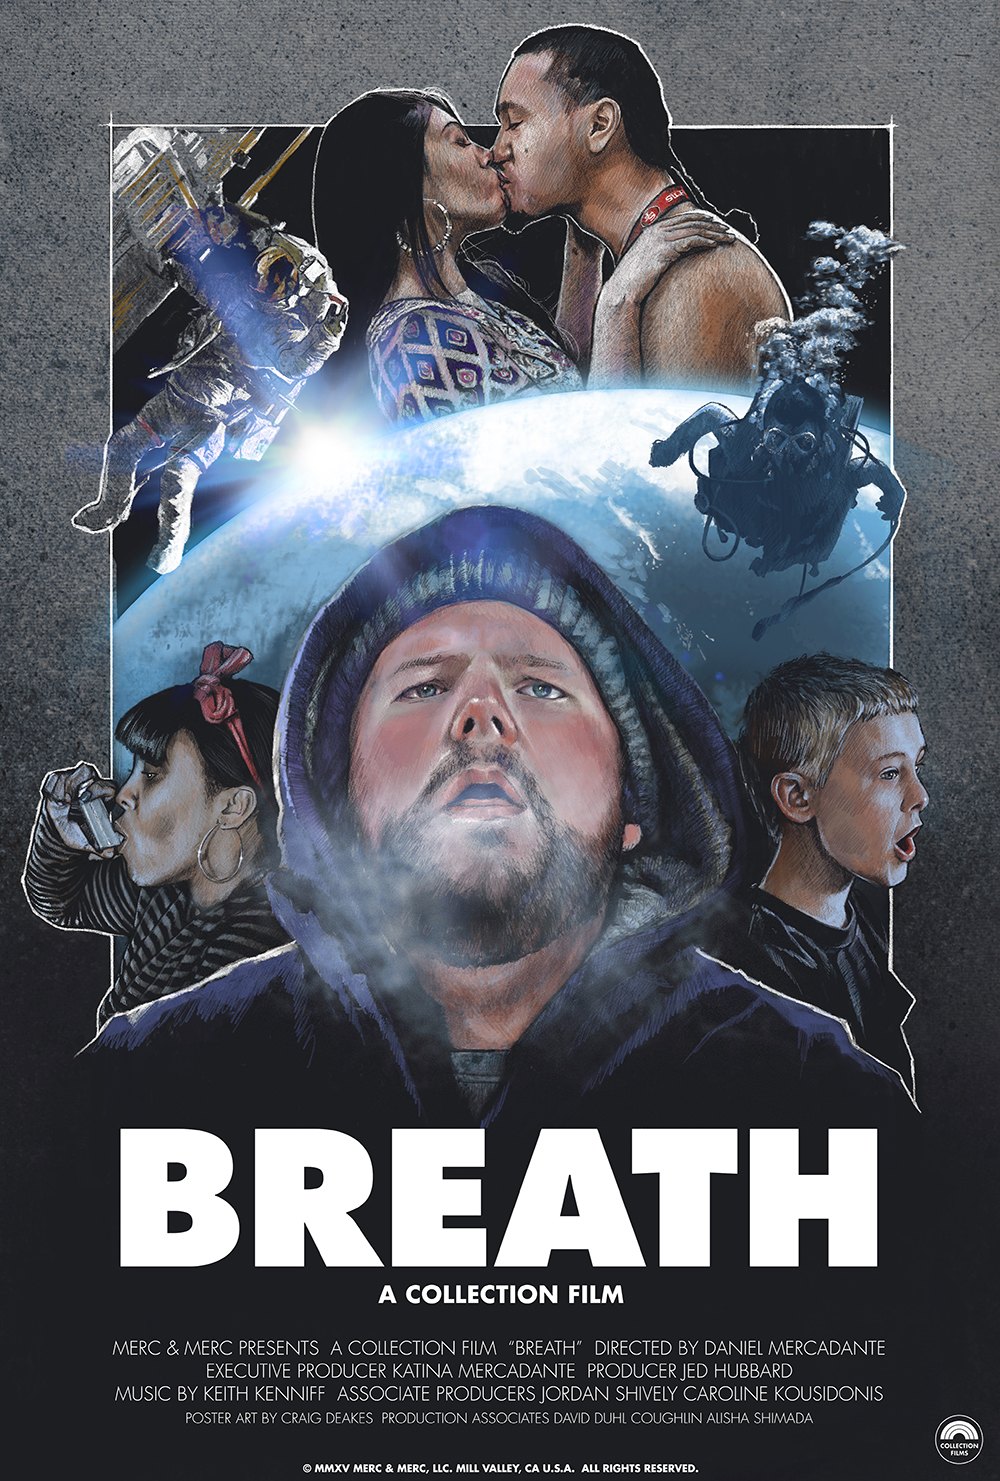 Breath  - A film about the invisible life-force.Credits:Made by The MercadantesDirector/DP/Editor - Daniel MercadanteExecutive Producer - Katina MercadanteProducer - Jed HubbardAssociate Producer - Jordan ShivelyMusic - Keith KenniffPoster Art - Craig Deakes Featured:Vimeo Staff PickColossalAdAge CreativityGizmodoBooooooomA Plus